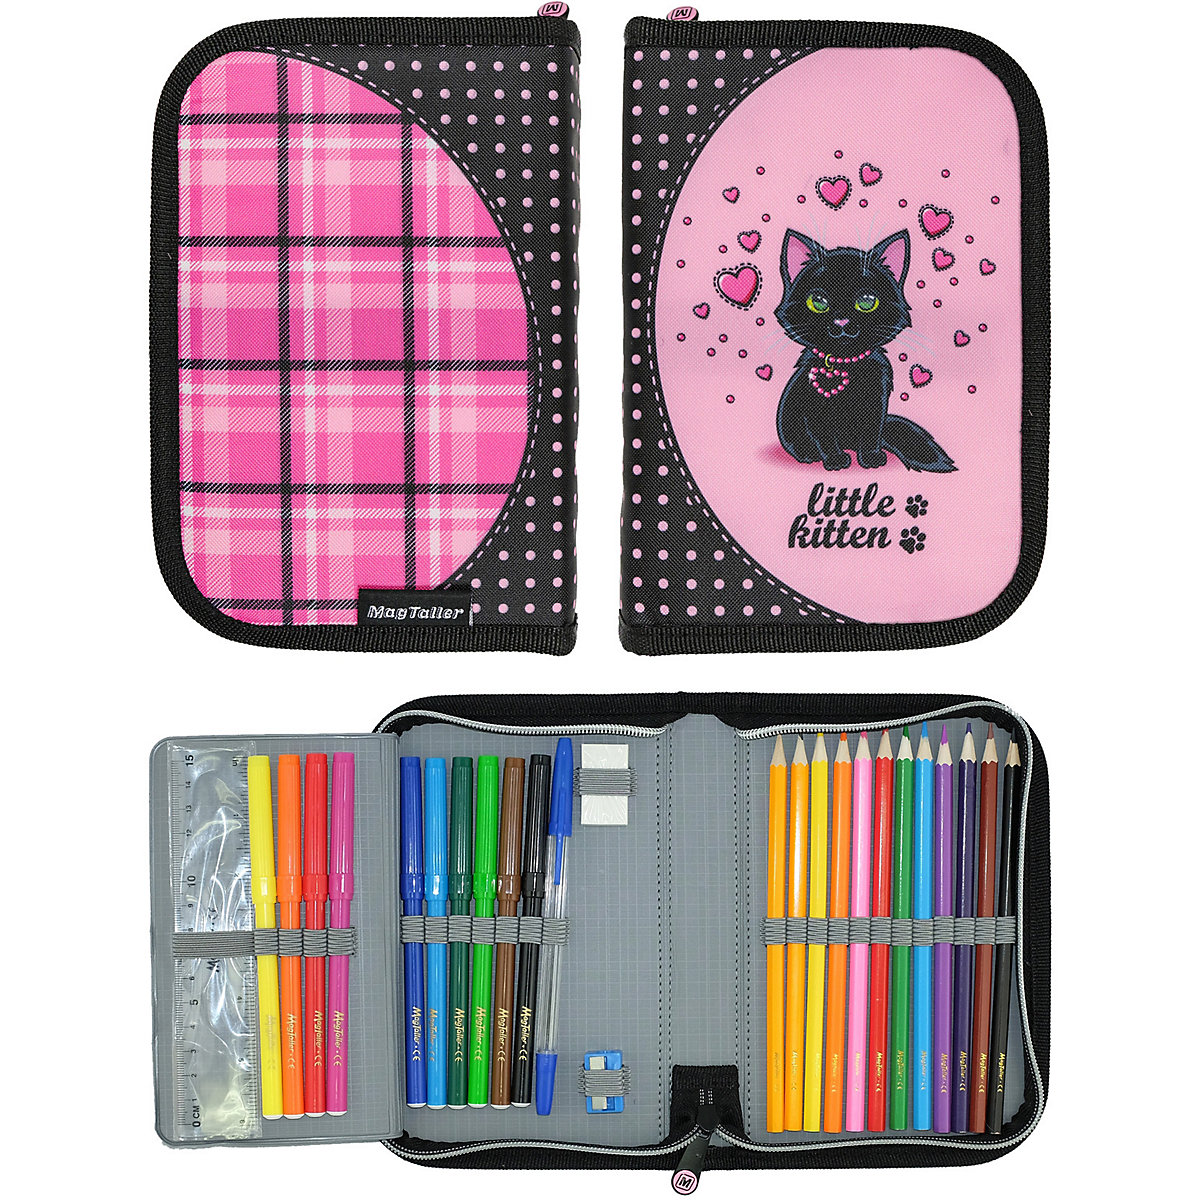 Фото - Pencil Cases MAGTALLER 11154862 school supplies stationery pencil cases for girls and boys drawing cases